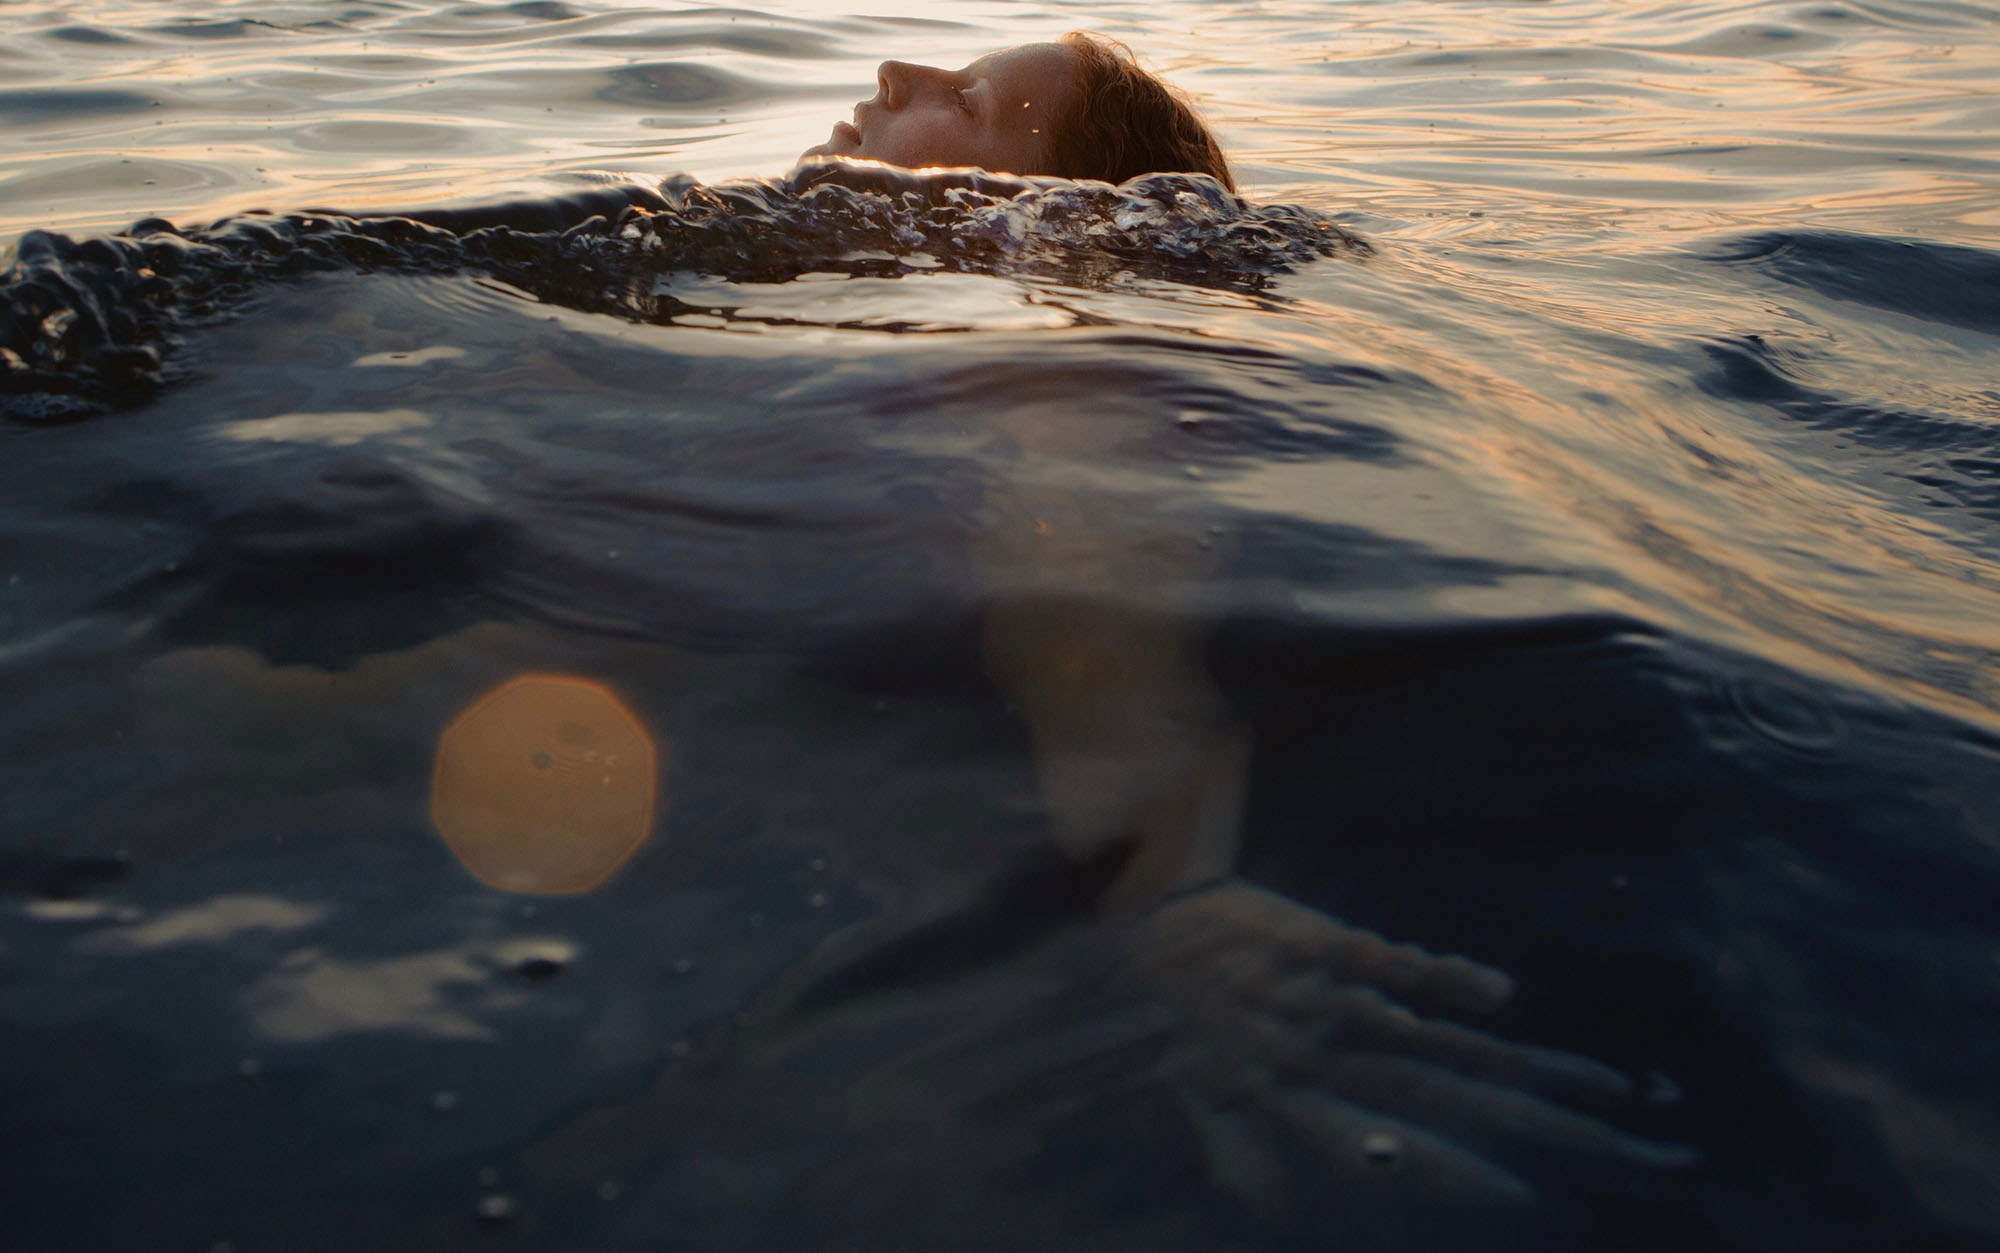 A girl floats on her back in a lake